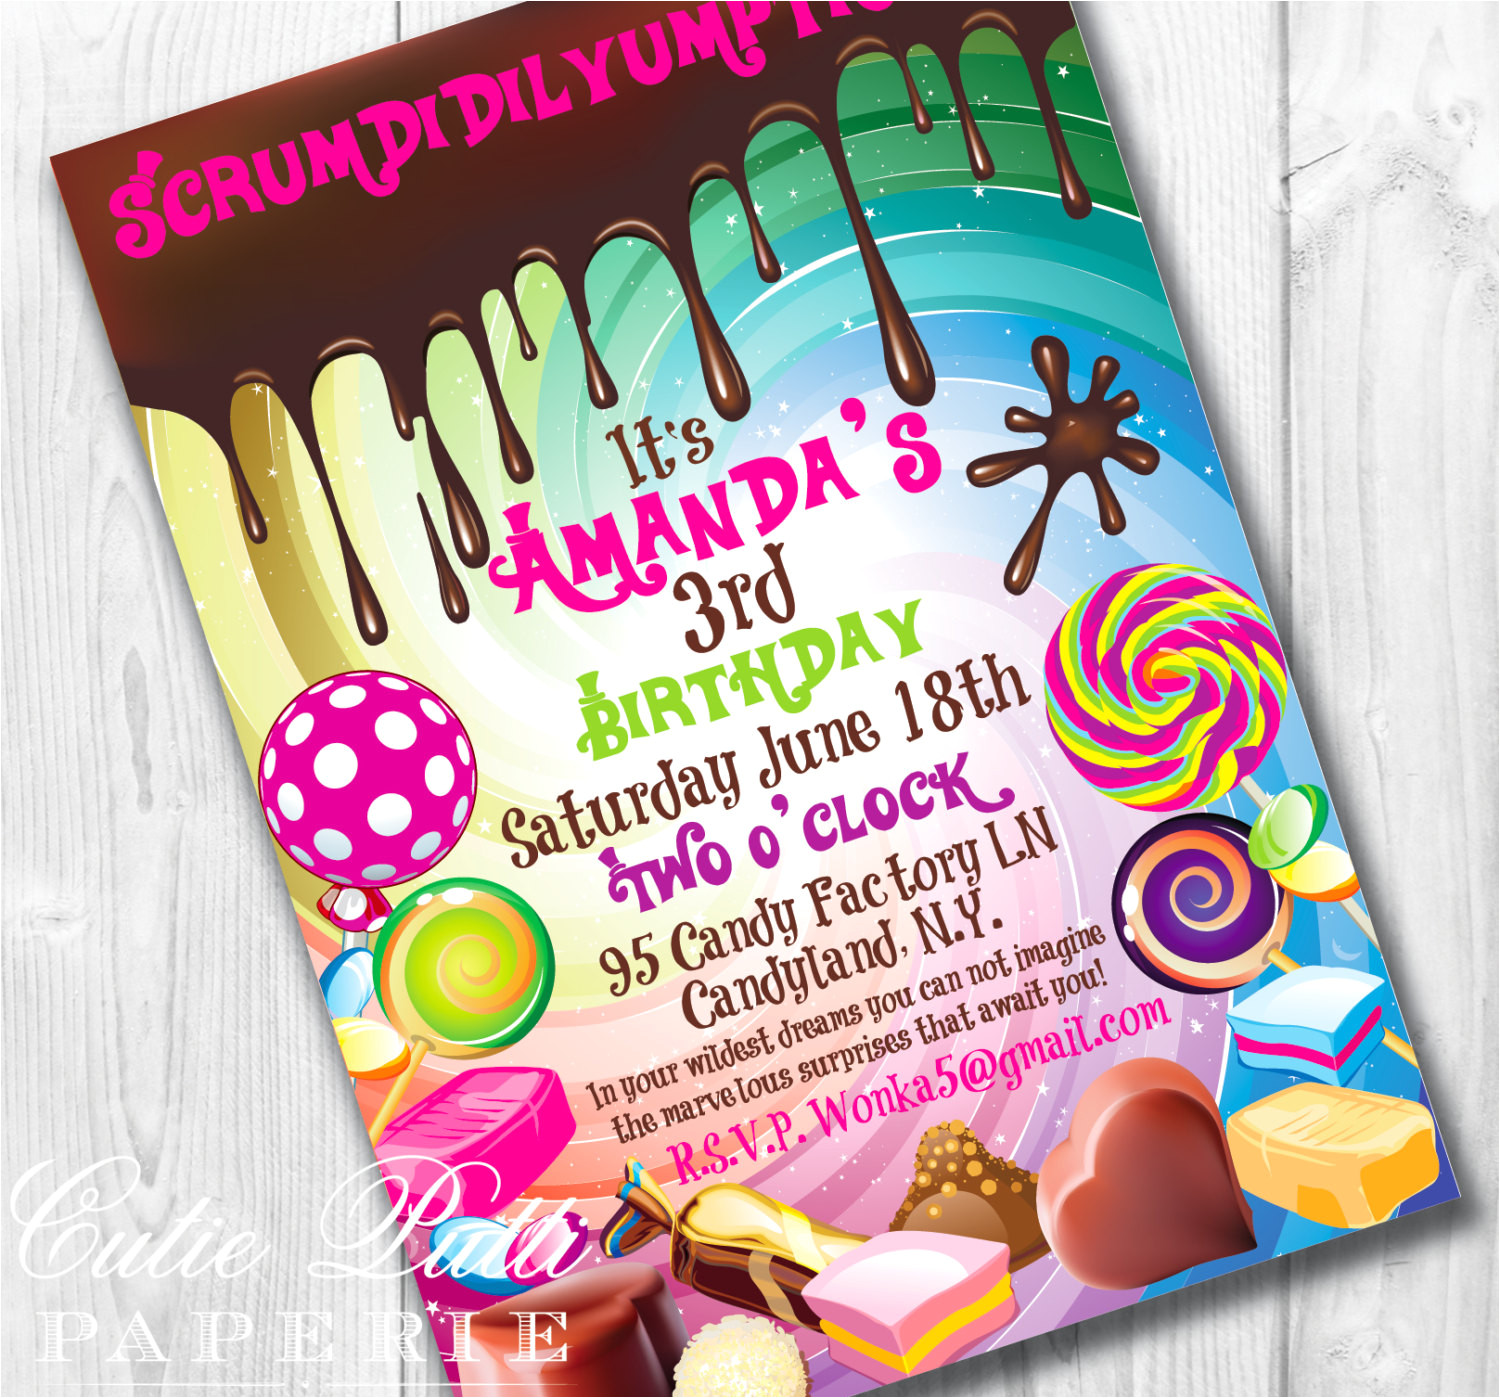 Willy Wonka Invitations Templates Willy Wonka Birthday Invitations Willy Wonka Invite Wonka